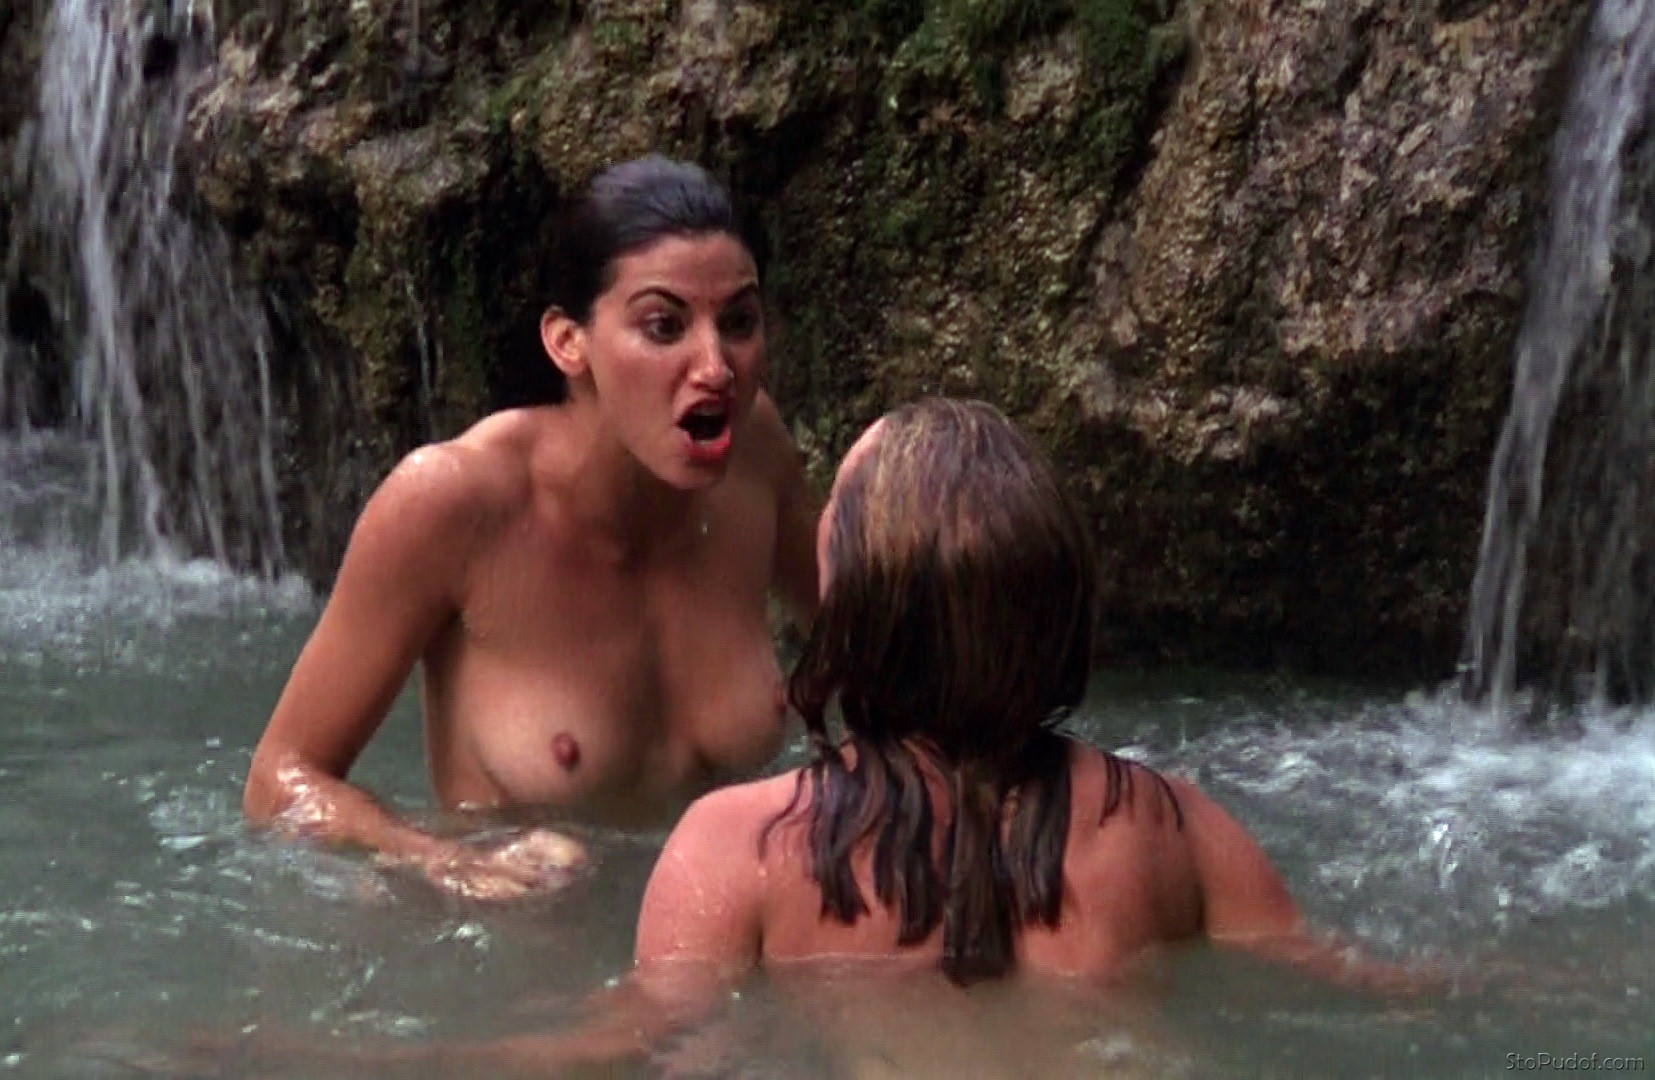 i want to see Gina Gershon nude pictures - UkPhotoSafari